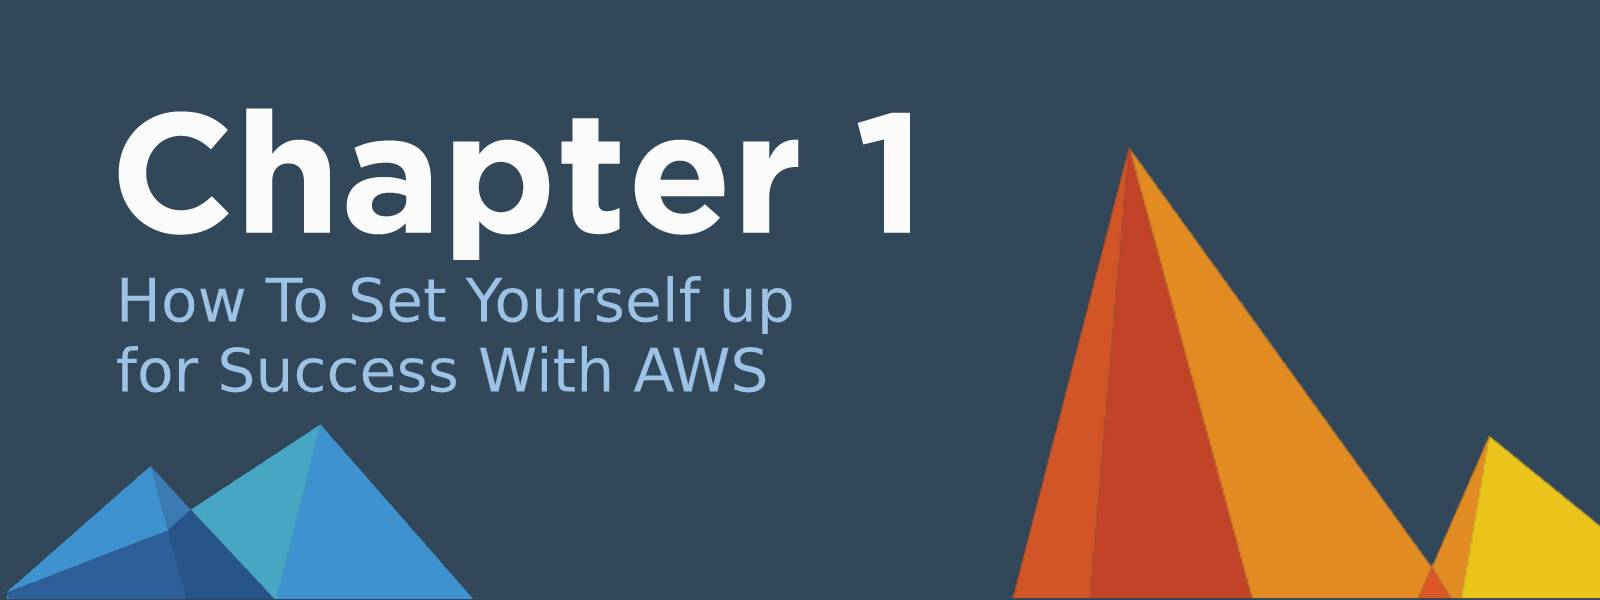 How to set yourself up for success with AWS - CloudZero